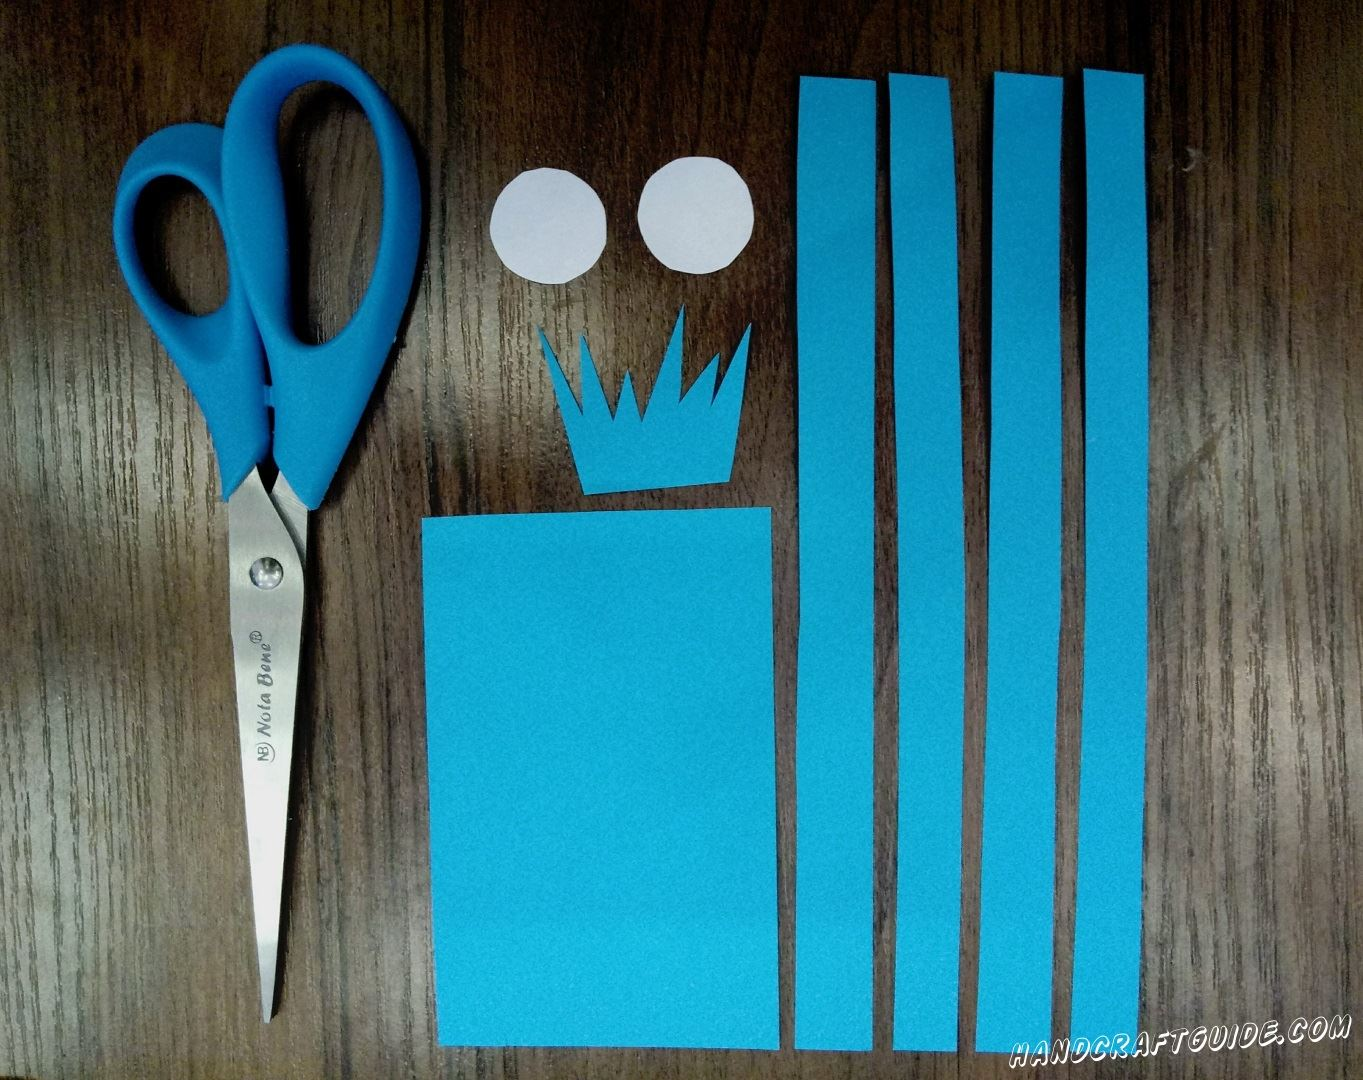 Cut out little figures of the blue construction paper like it is shown in the picture.